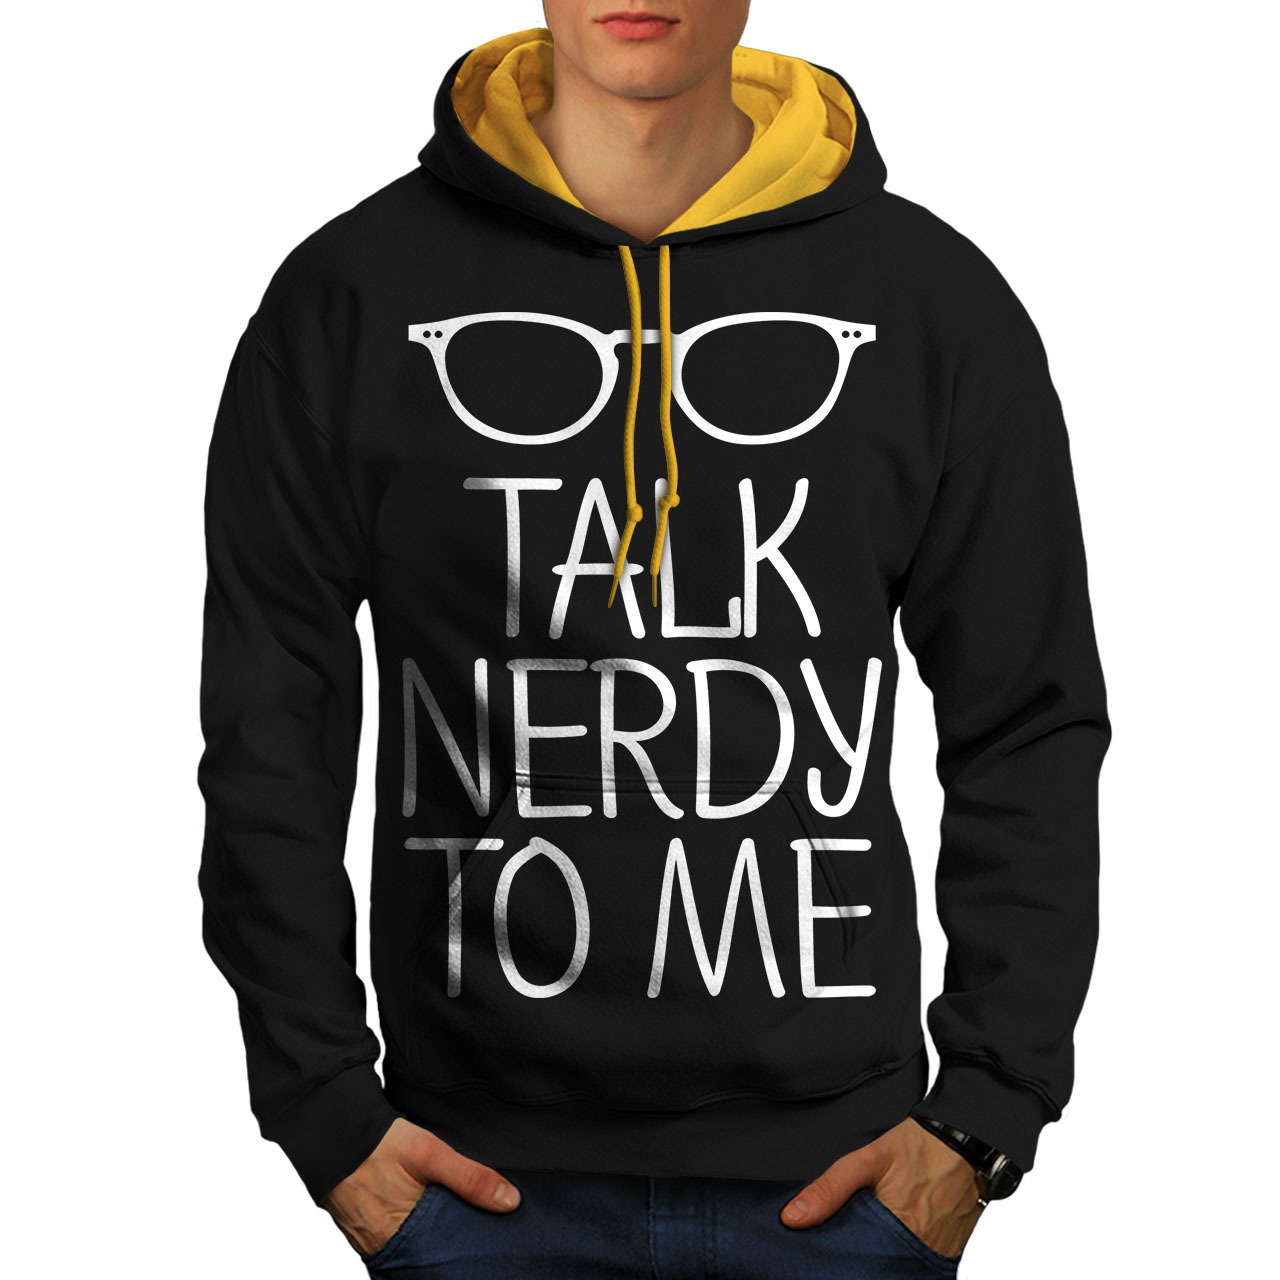 Primary image for Talk Nerdy To Me Sweatshirt Hoody Geek Glasses Men Contrast Hoodie